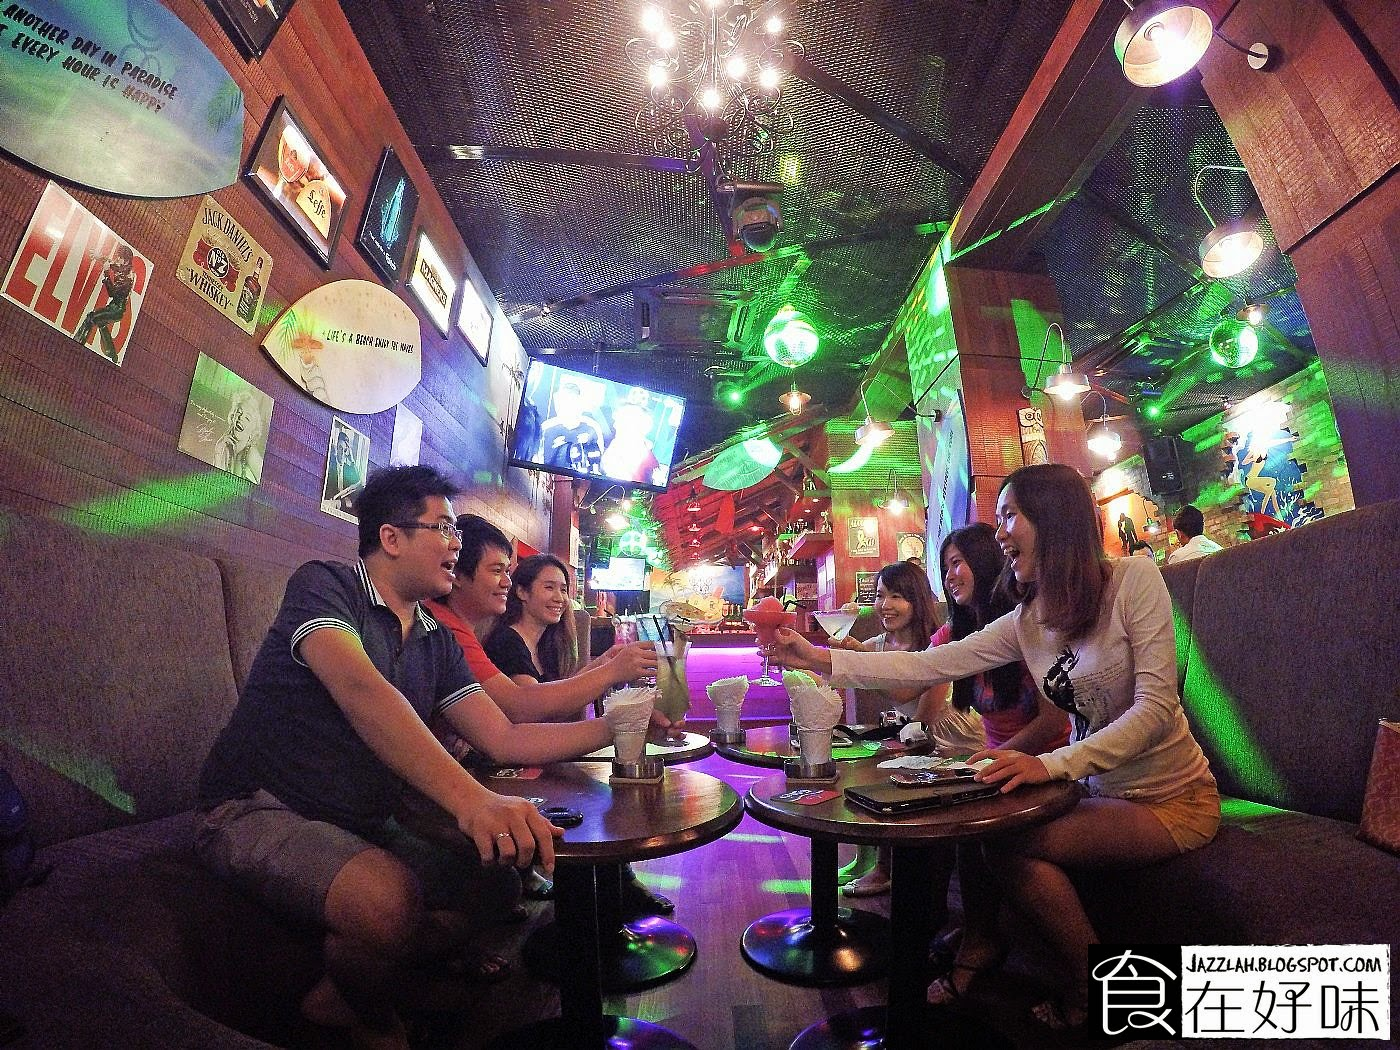 槟城酒吧 The Beach Bar Penang Upper Road 食在好玩 美食旅游部落